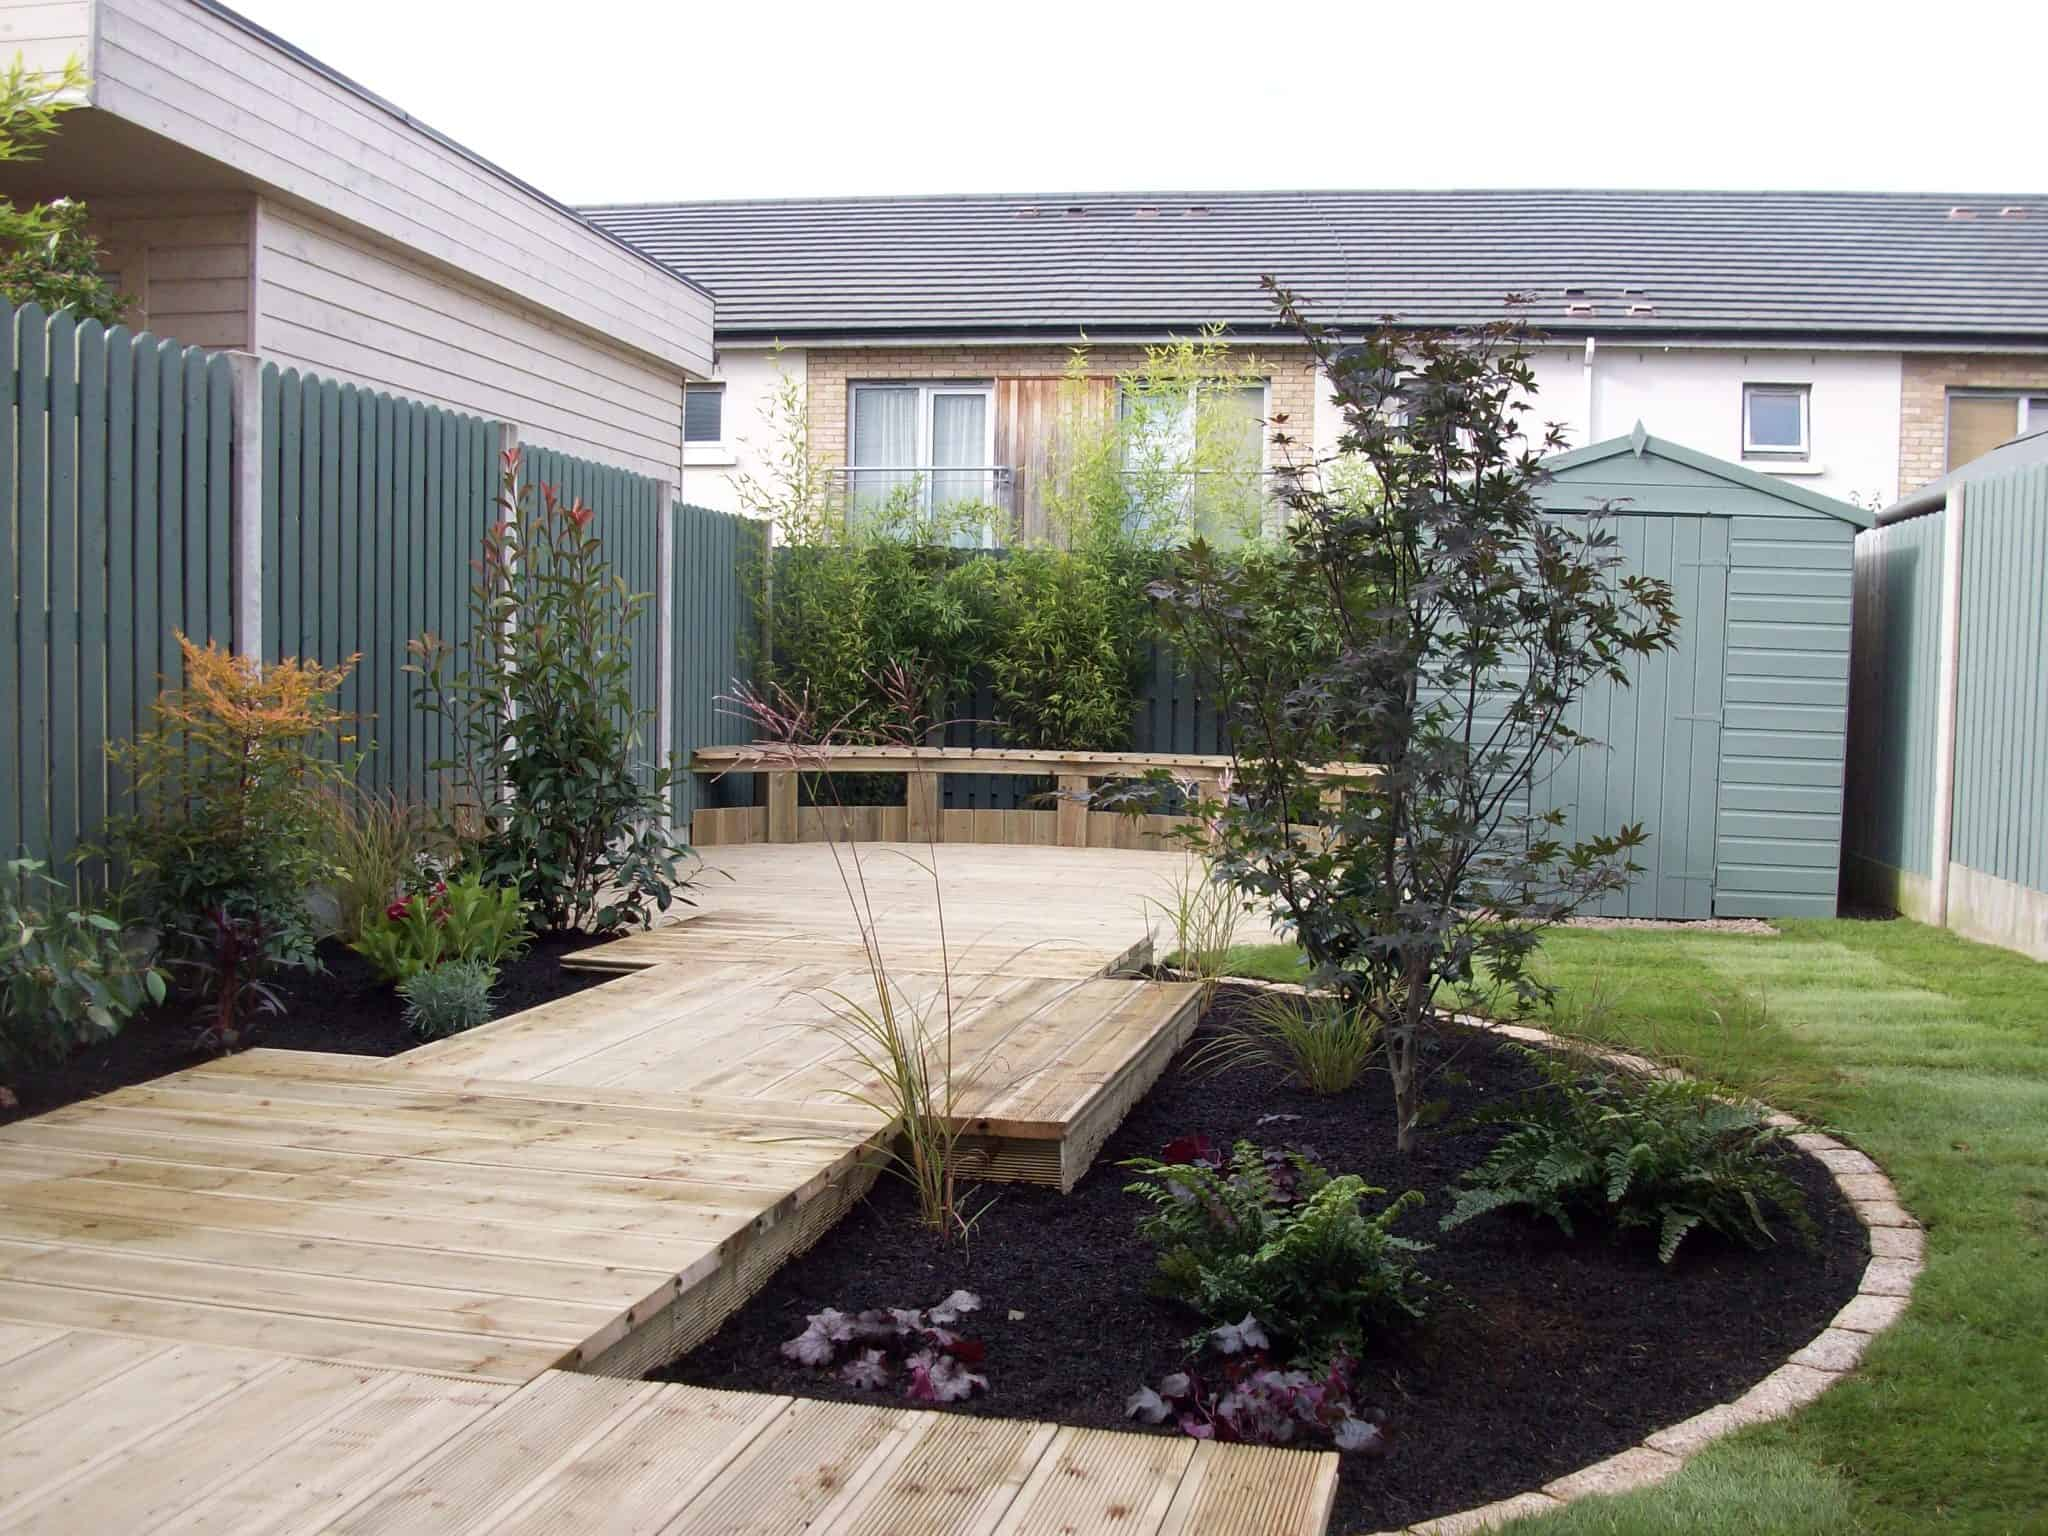 S&les of our Garden Design & Garden Design